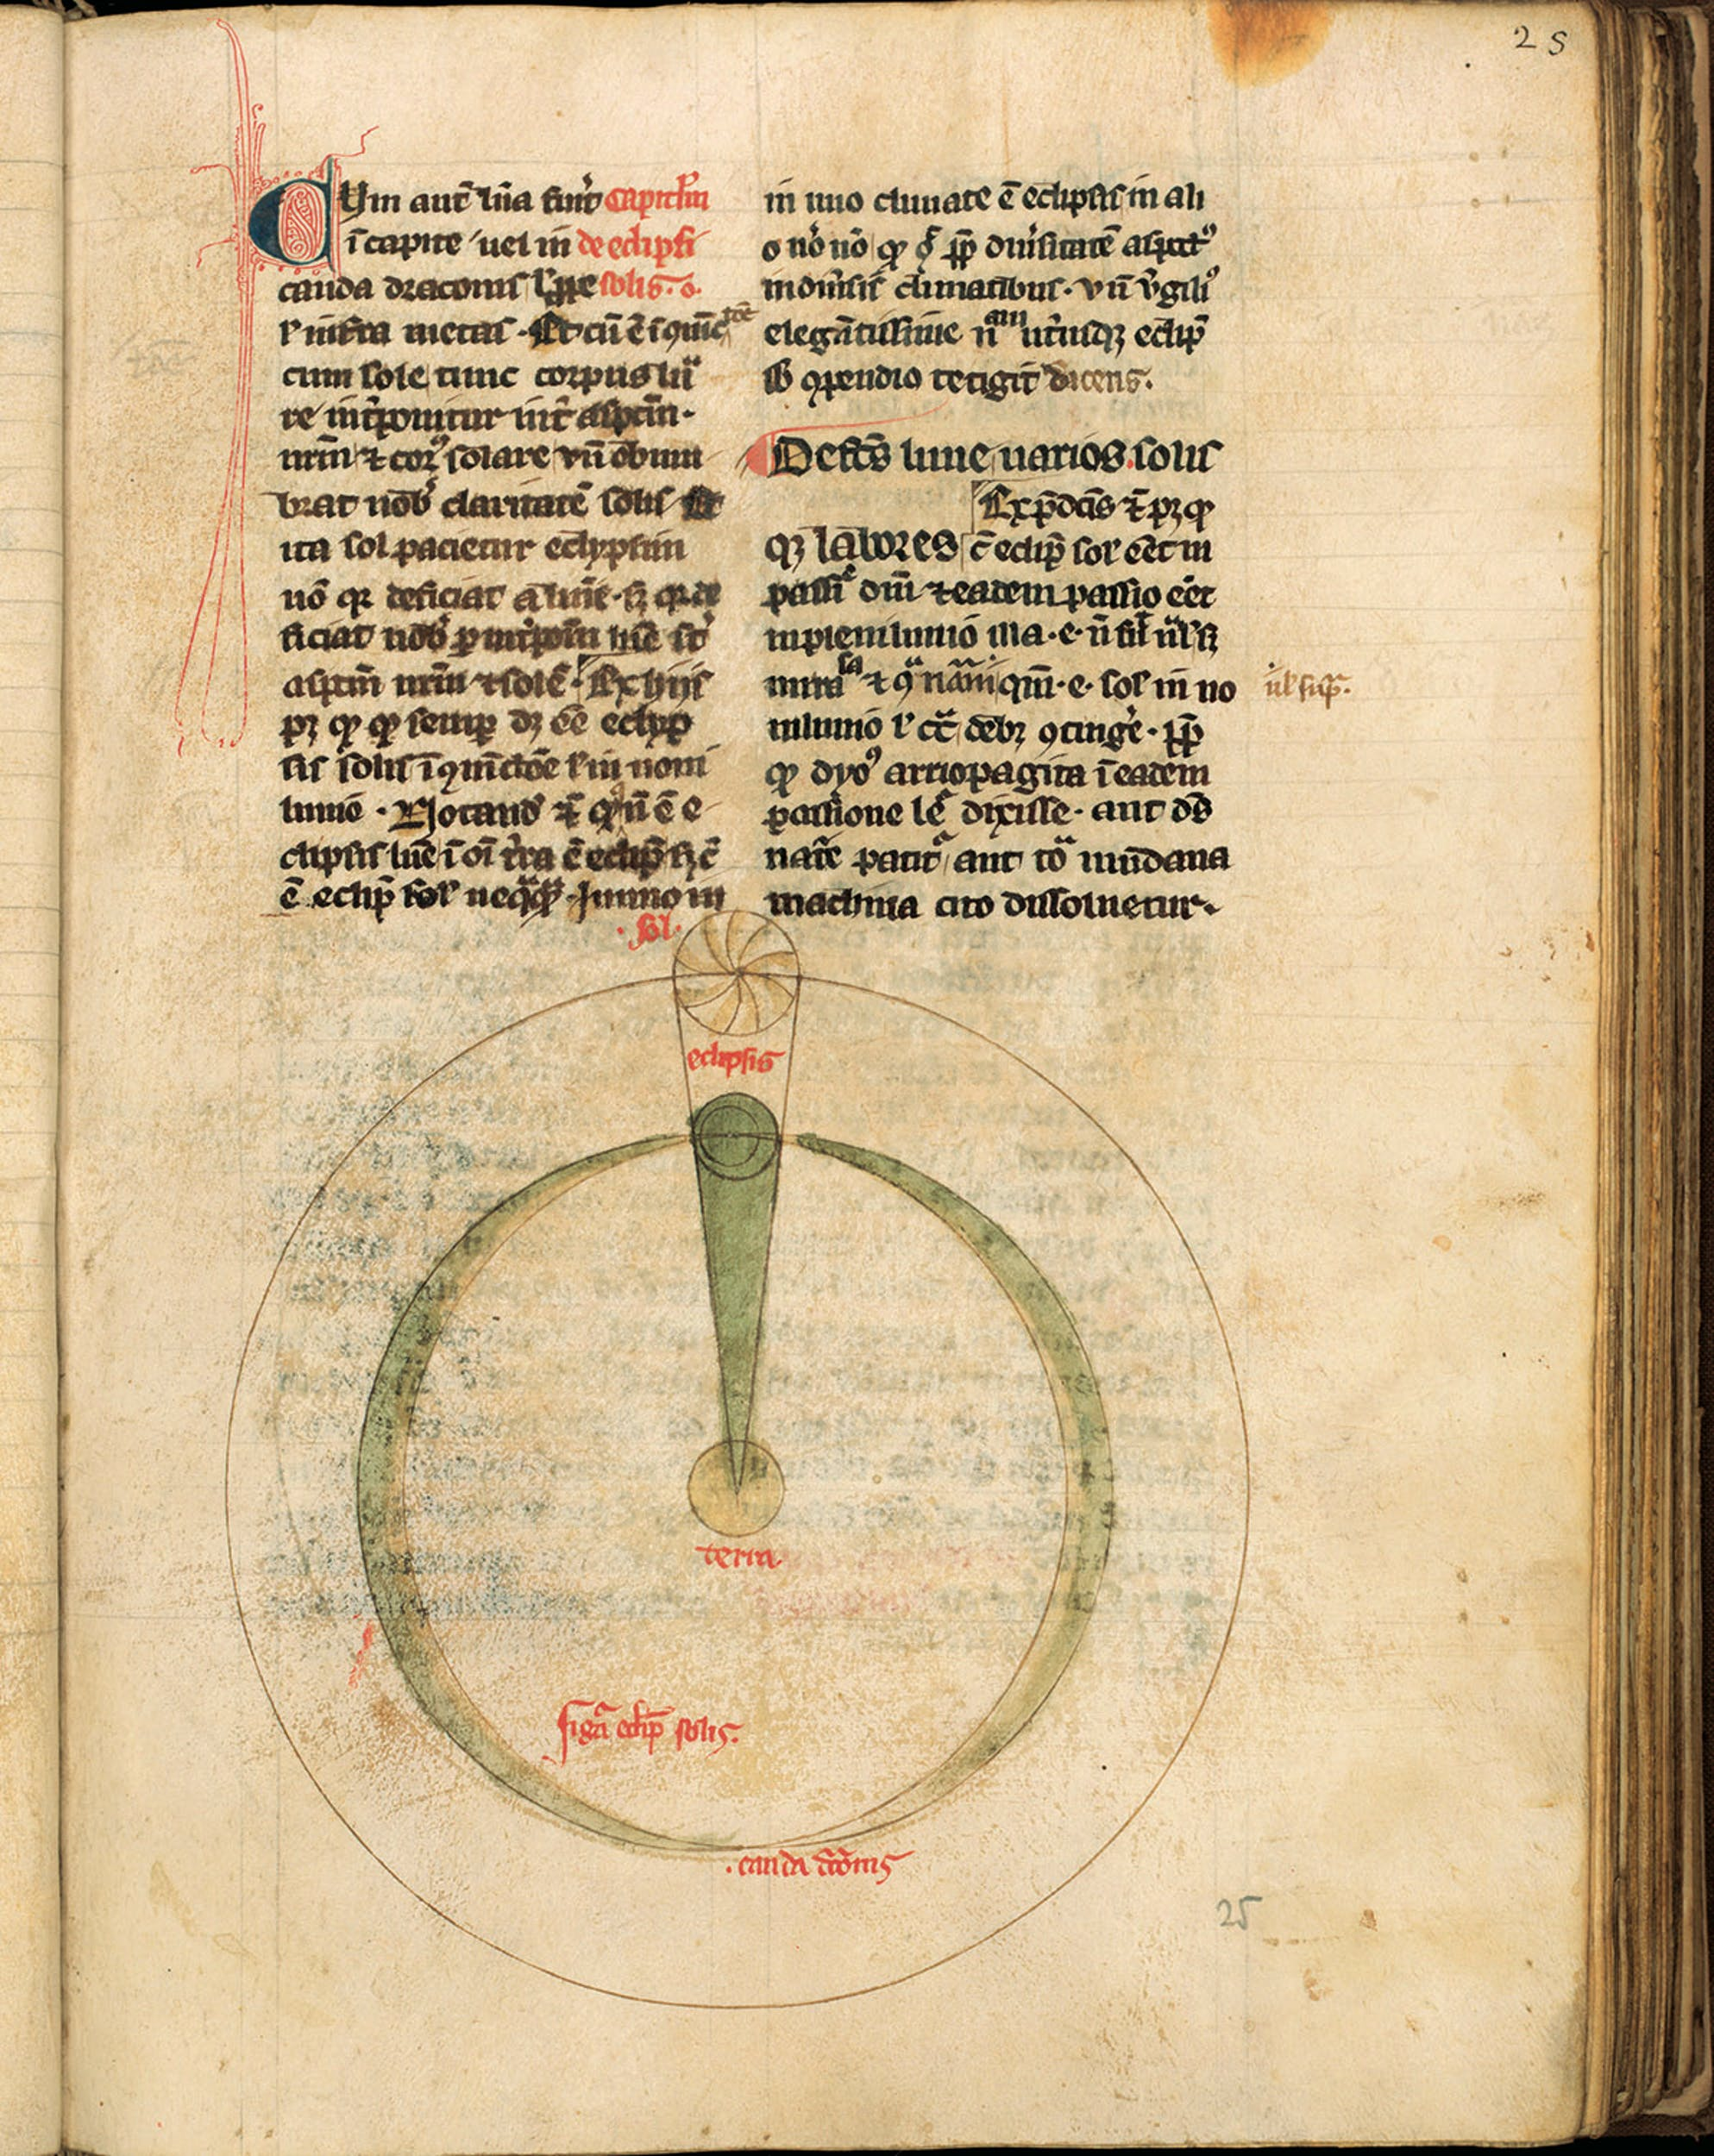 Giovanni Sacrobosco (Halifax, Yorkshire fine del XII secolo - Parigi 1244 o 1256) Tractatus de Sphaera: diagrammi sulle relazioni Sole-Terra-Luna XIV secolo manoscritto membranaceo, f. 25r Biblioteca Medicea Laurenziana, Firenze I John of Holywood (Halifax, Yorkshire late 12th century - Paris 1244 or 1256) Tractatus de Sphaera: diagrams on the relationships between Sun, Earth and Moon 14th century parchment Ms, f. 25r Biblioteca Medicea Laurenziana, Firenze